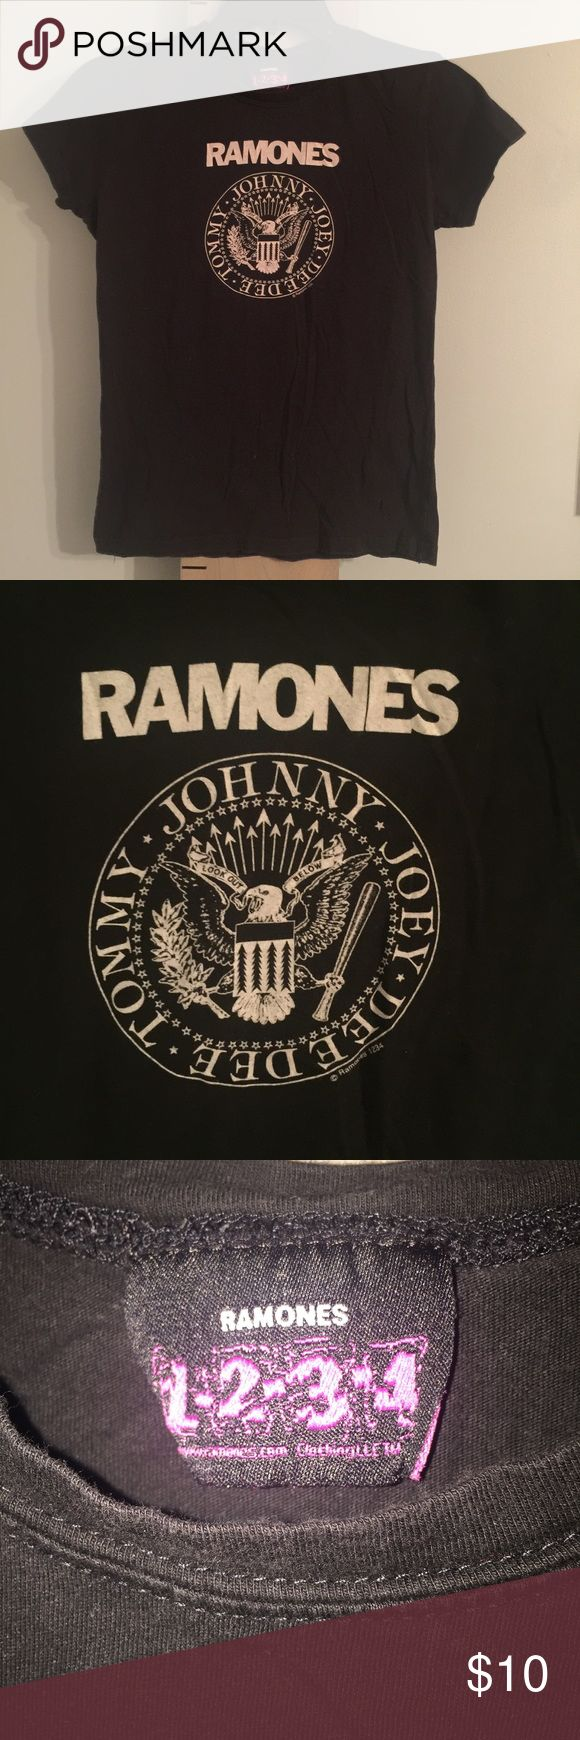 """Ramones Band Tee 100% Cotton Black White This shirt is so fun! """"RAMONES"""" print with play on the presidential seal and the band members names circling it - Johnny, Joey, Deedee, Tommy. 100% cotton, in perfect condition. Measures 19"""" armpit to armpit, 17"""" armpit to bottom hem, 22"""" front collar to bottom hem. Ramones 1234 Tops Tees - Short Sleeve"""